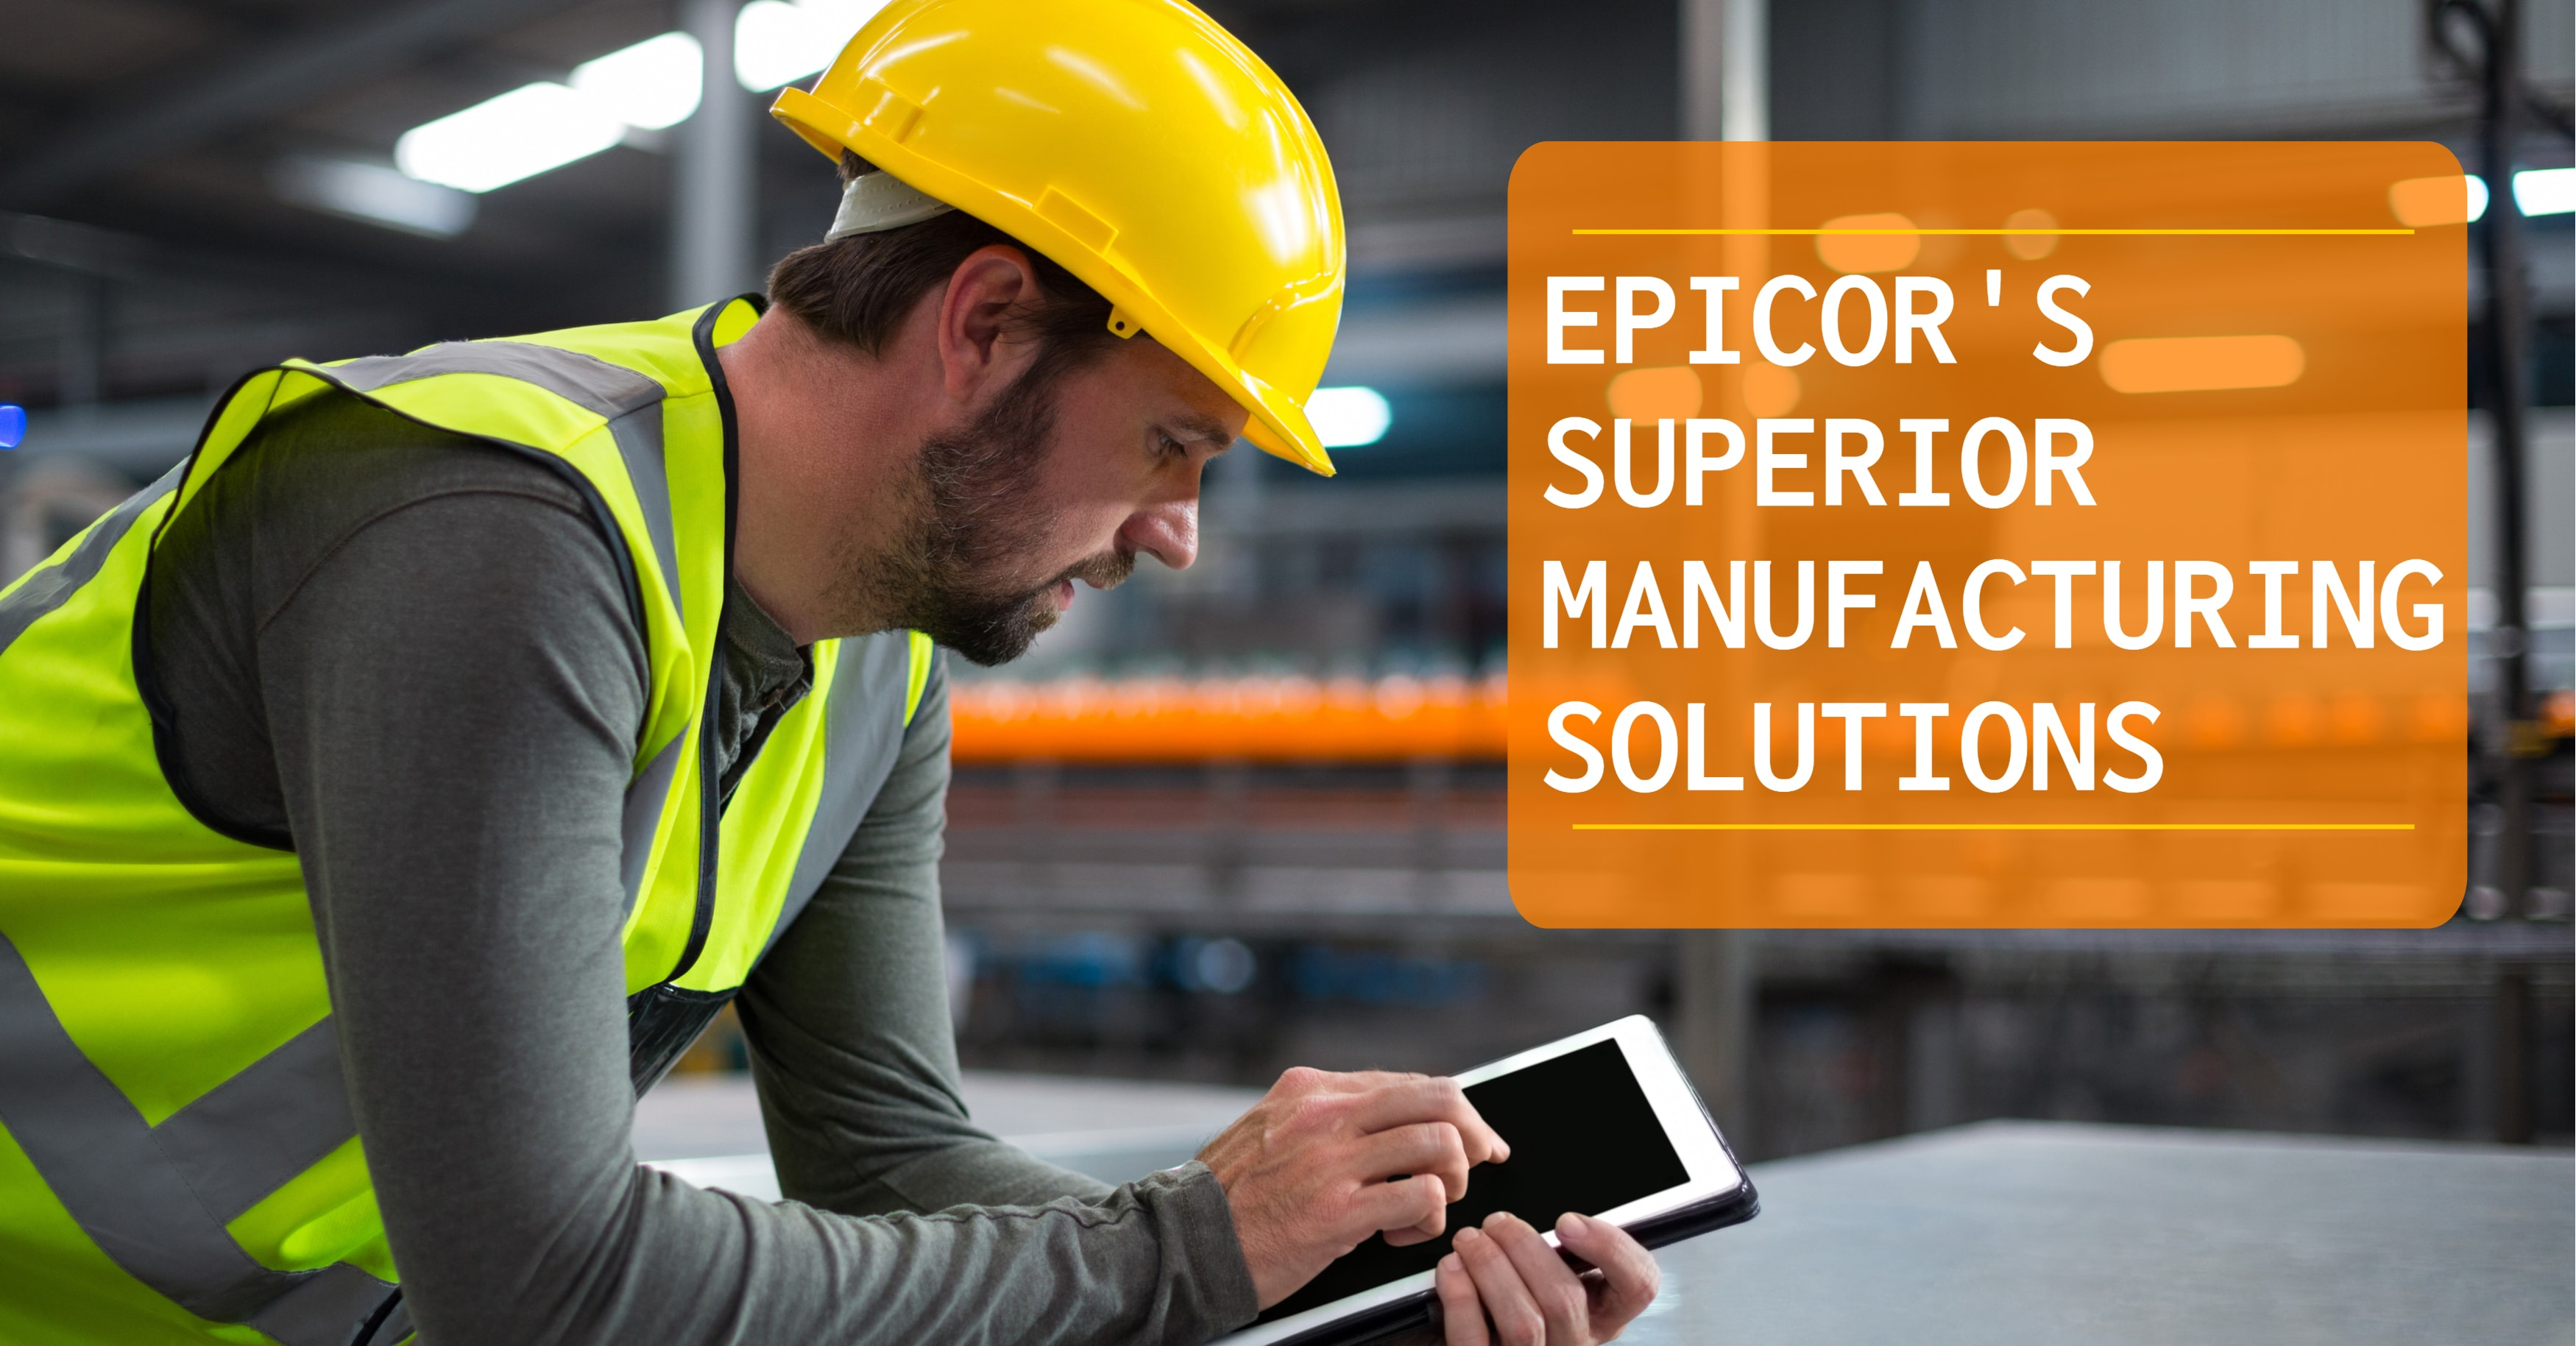 Epicor Manufacturing Solutions